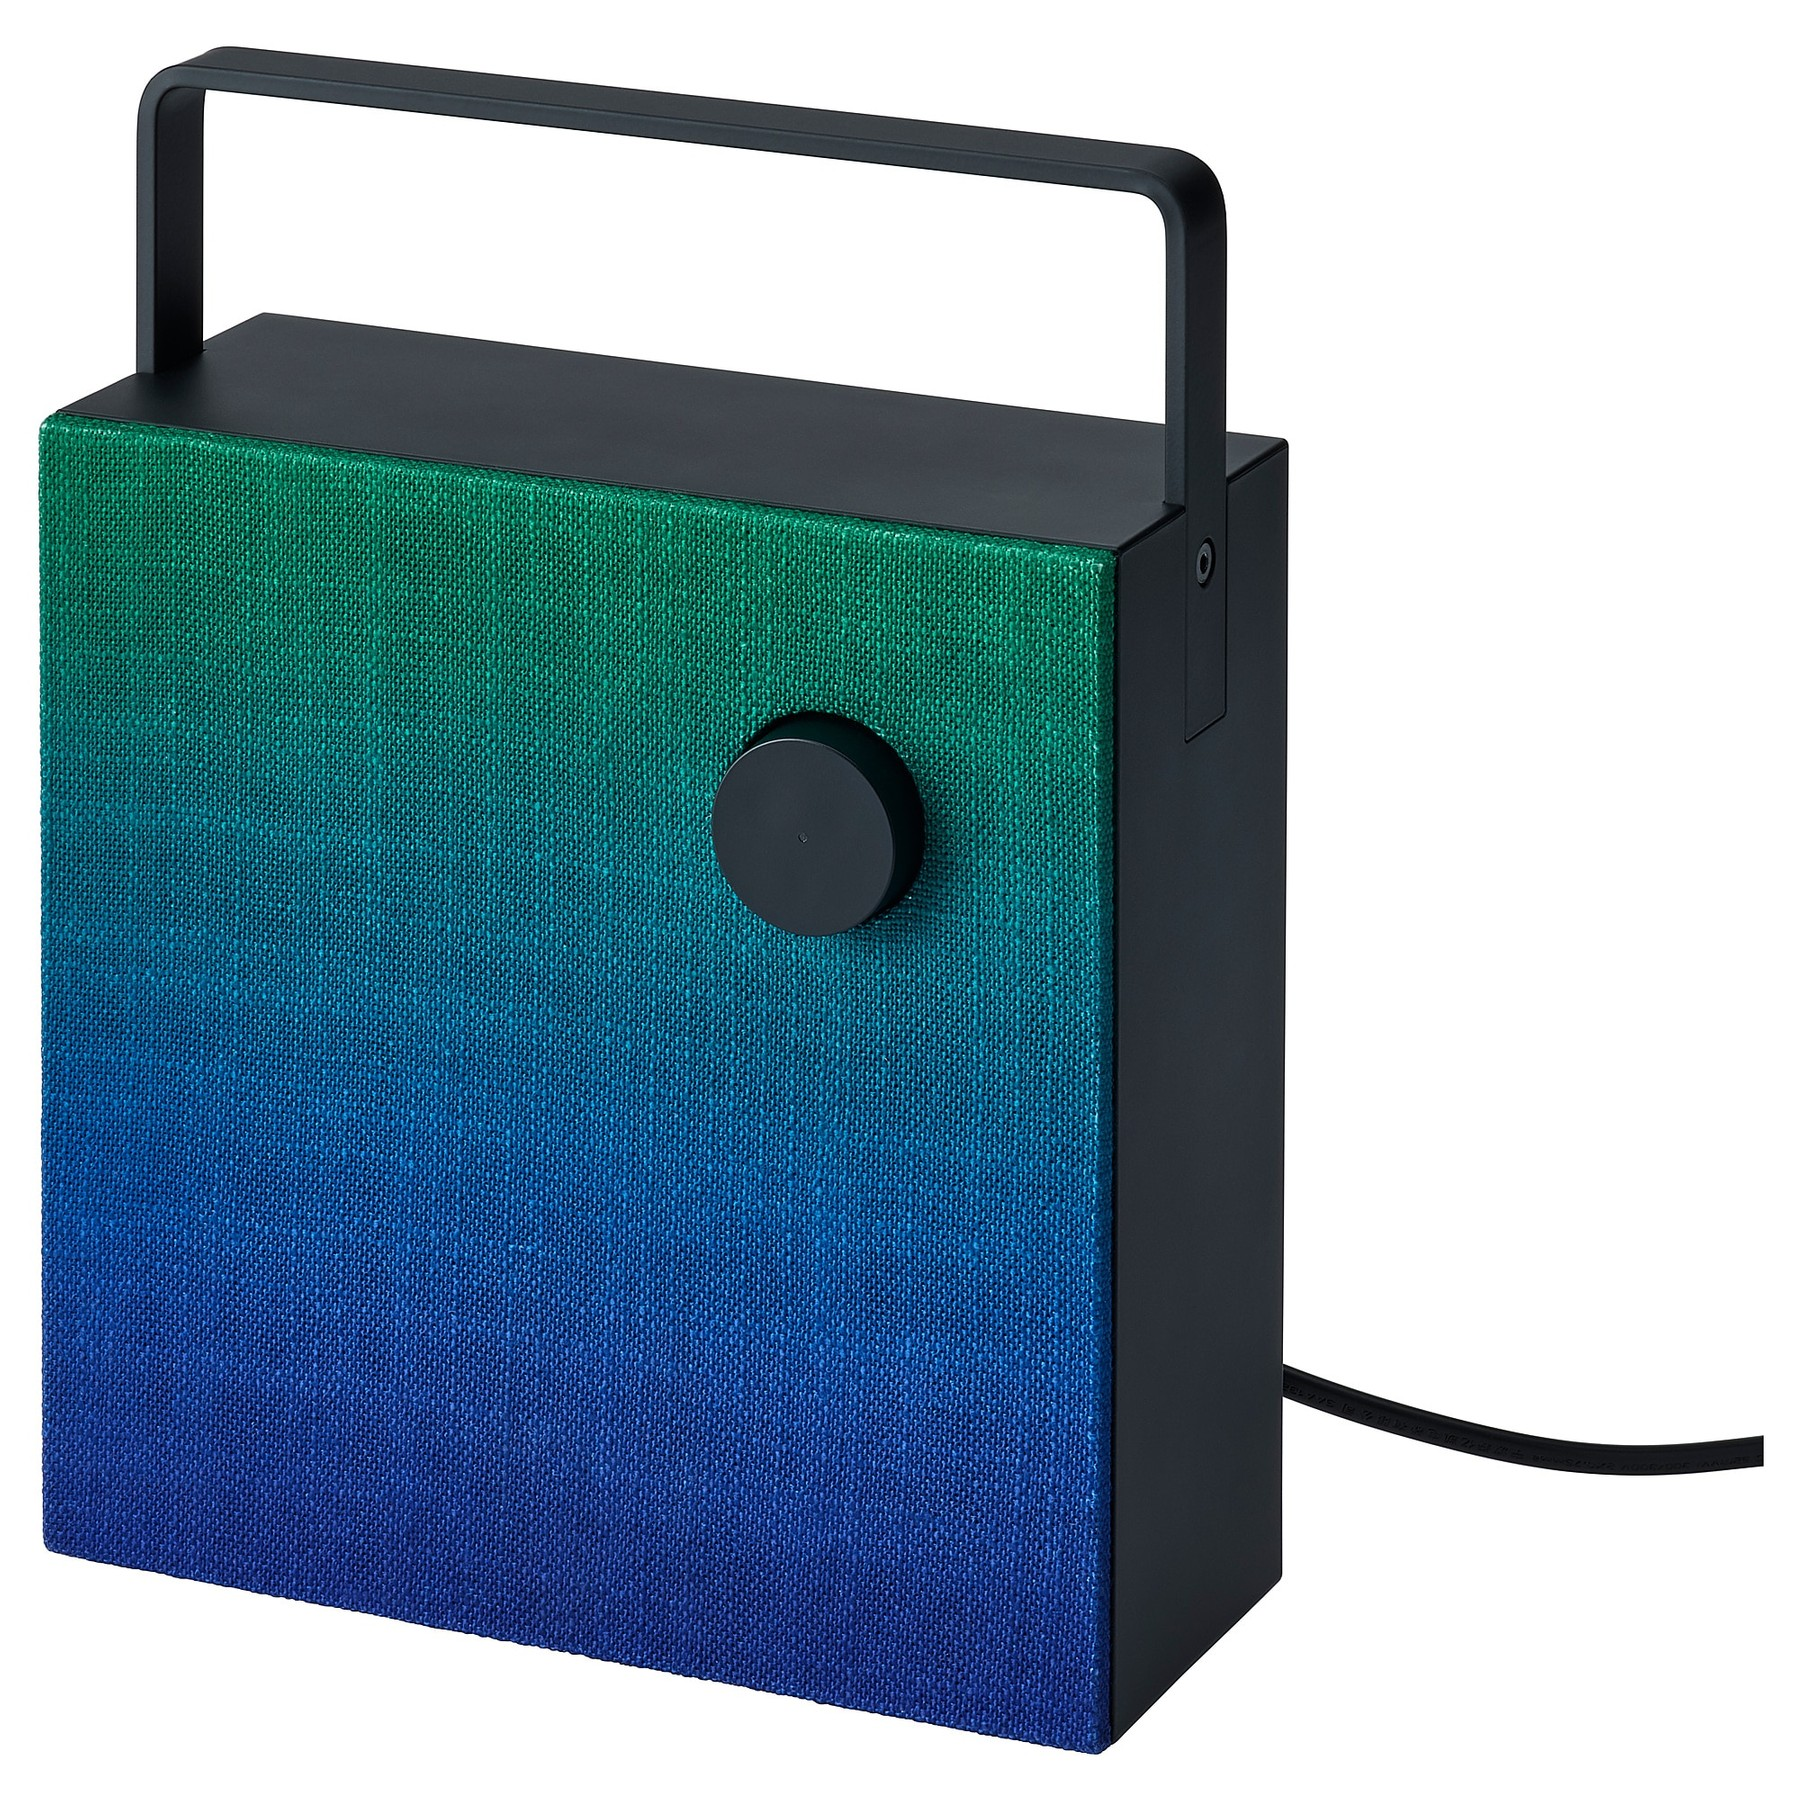 eneby-front-for-bluetooth-speaker-green__0914225_pe783875_s5.jpg?f=g